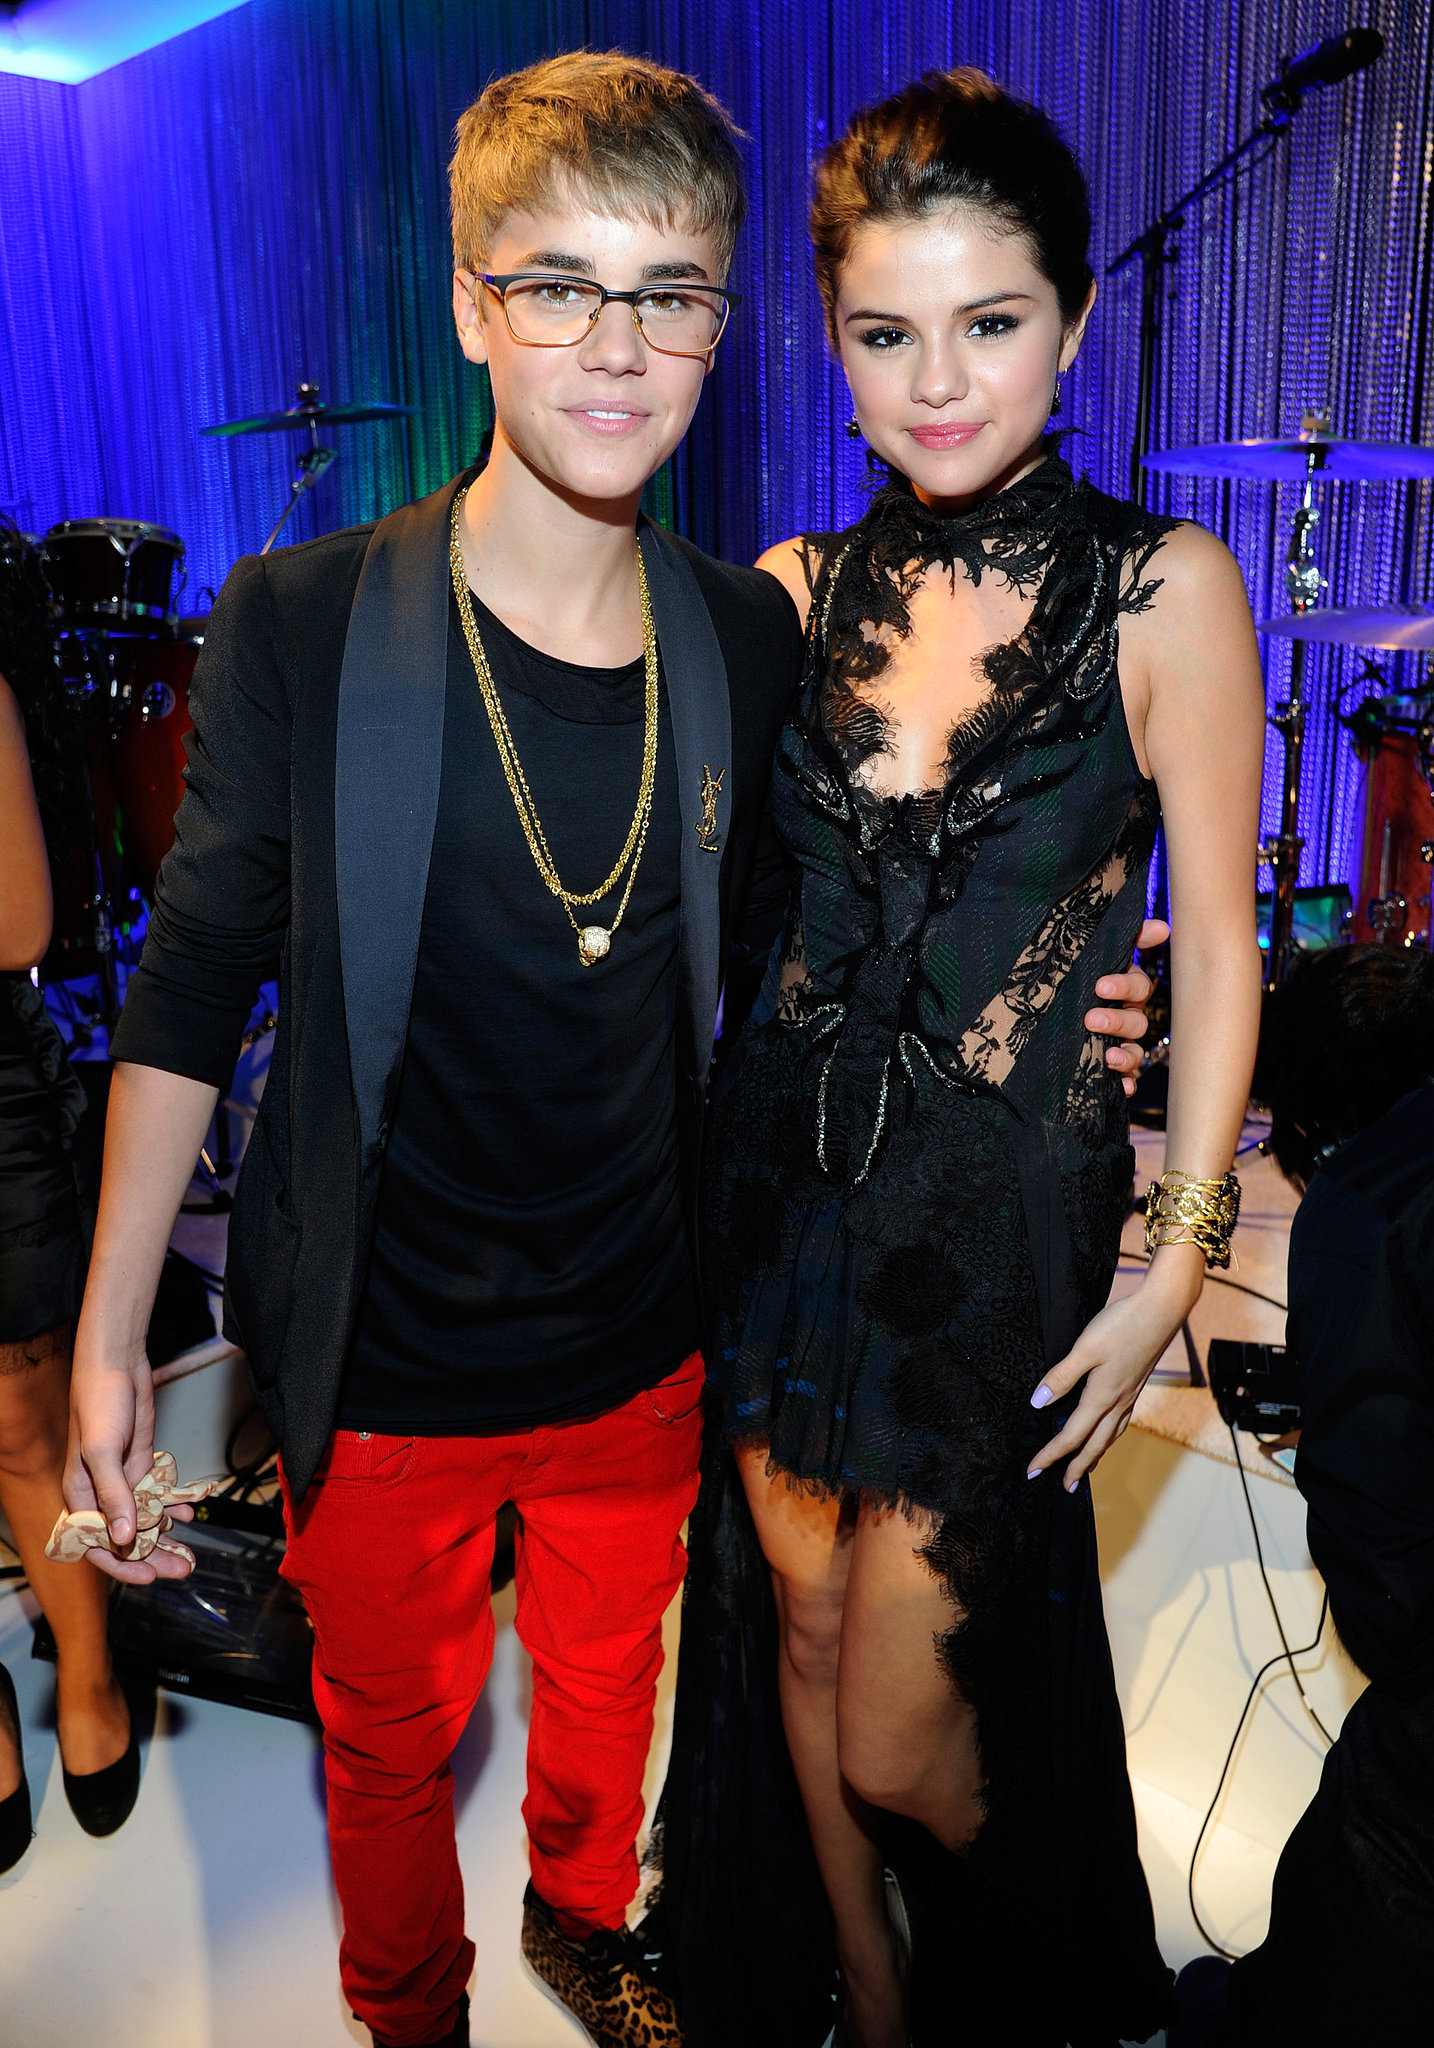 In 2011, Justin Bieber and Selena Gomez were coupled up on the red carpet.